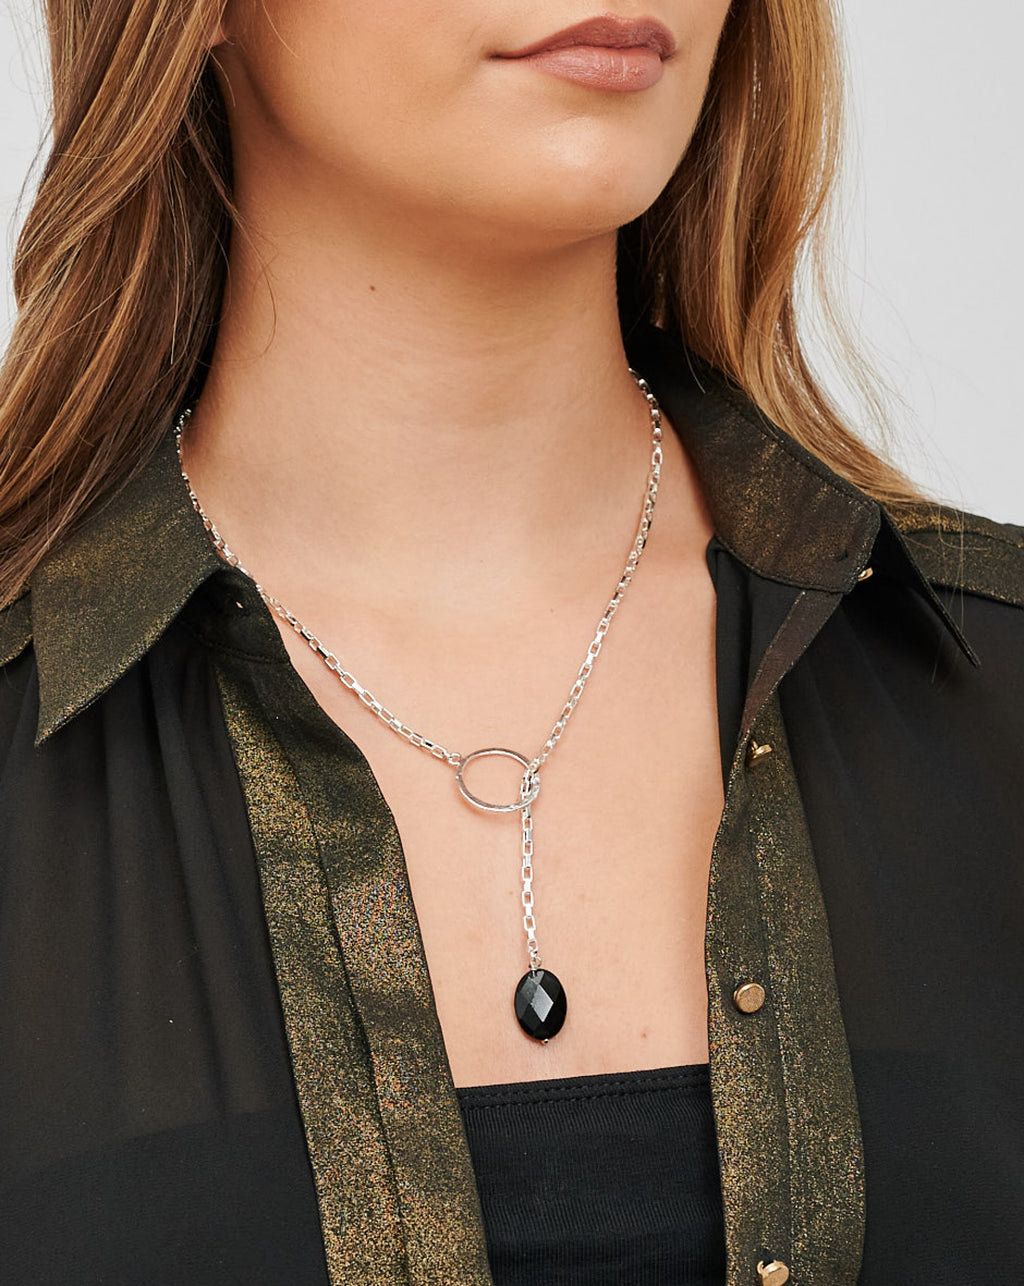 CHARA Silver Lariat and Black Onyx Necklace